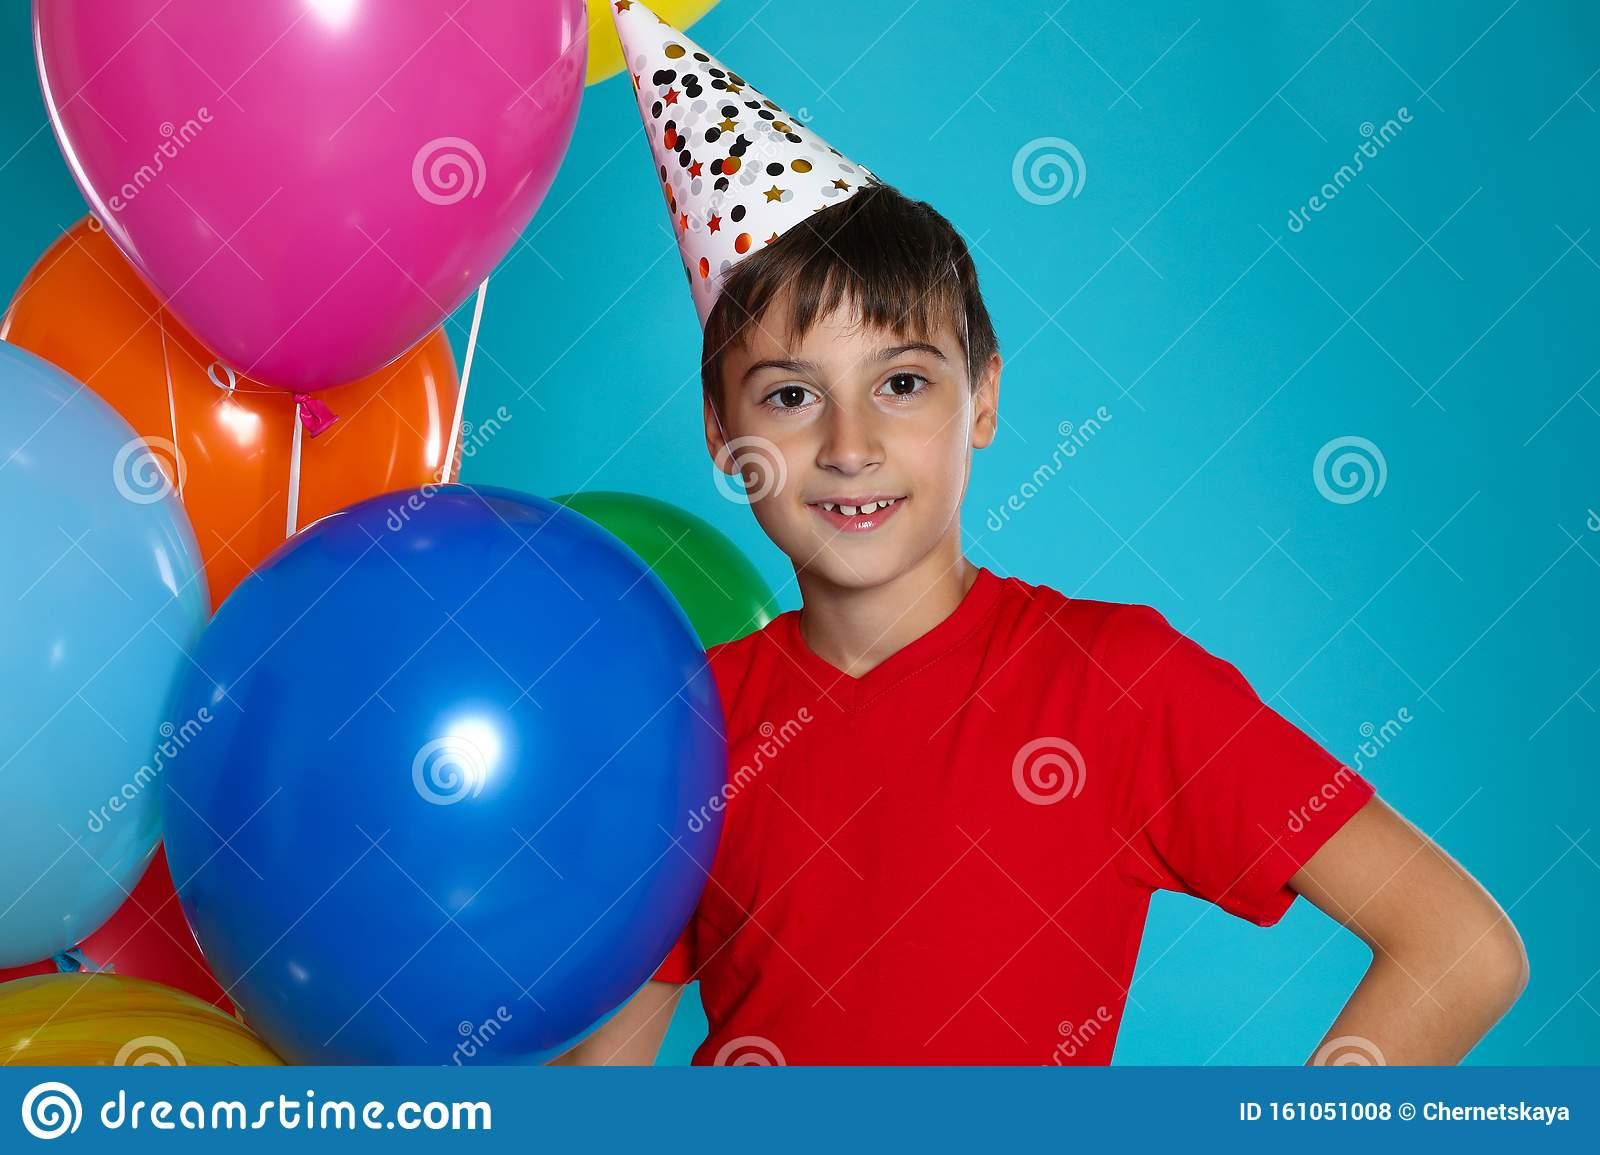 Happy boy with balloons. Birthday celebration